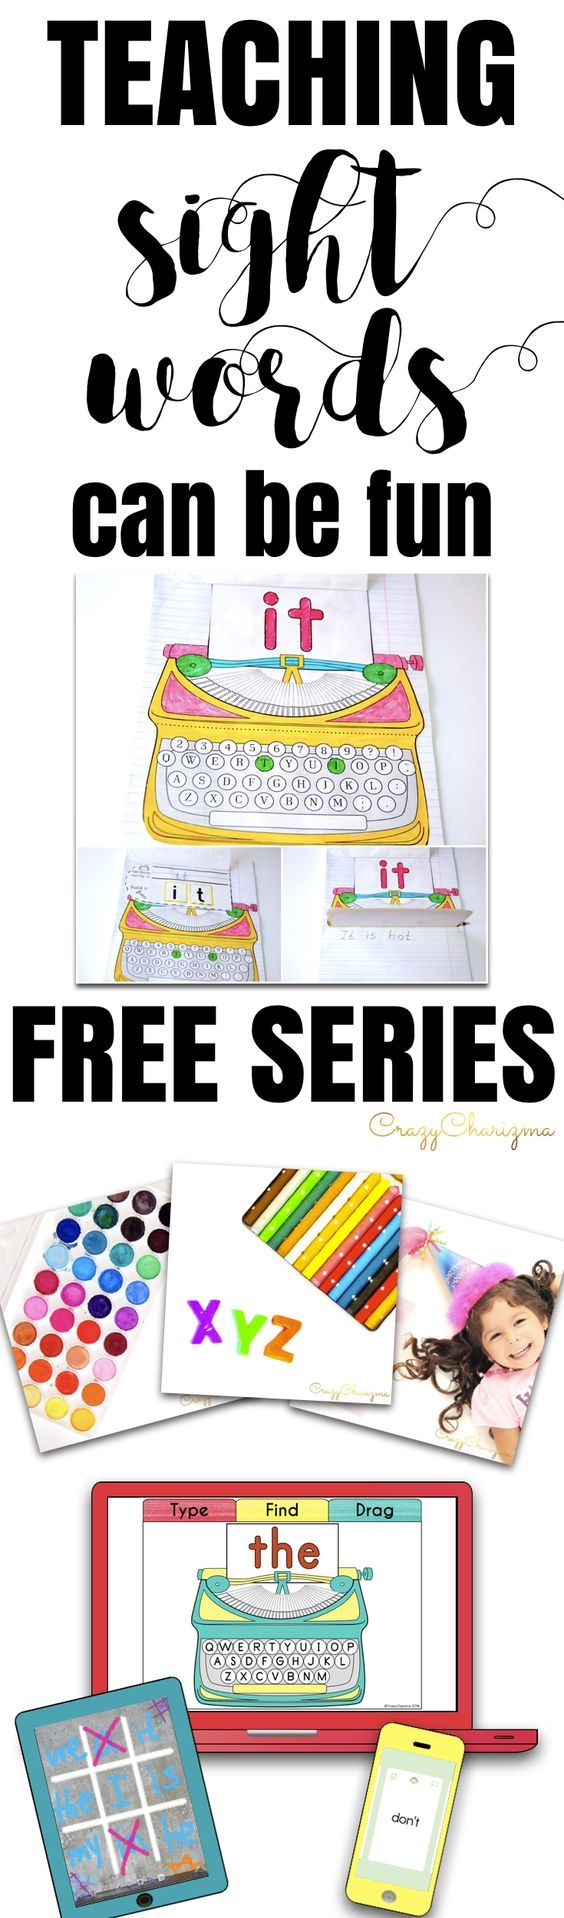 Teaching sight words can be fun - try yourself and subscribe to FREE series. You'll discover various ways to spice up teaching: using magic around you, embracing technology and going interactive with your kids! | CrazyCharizma